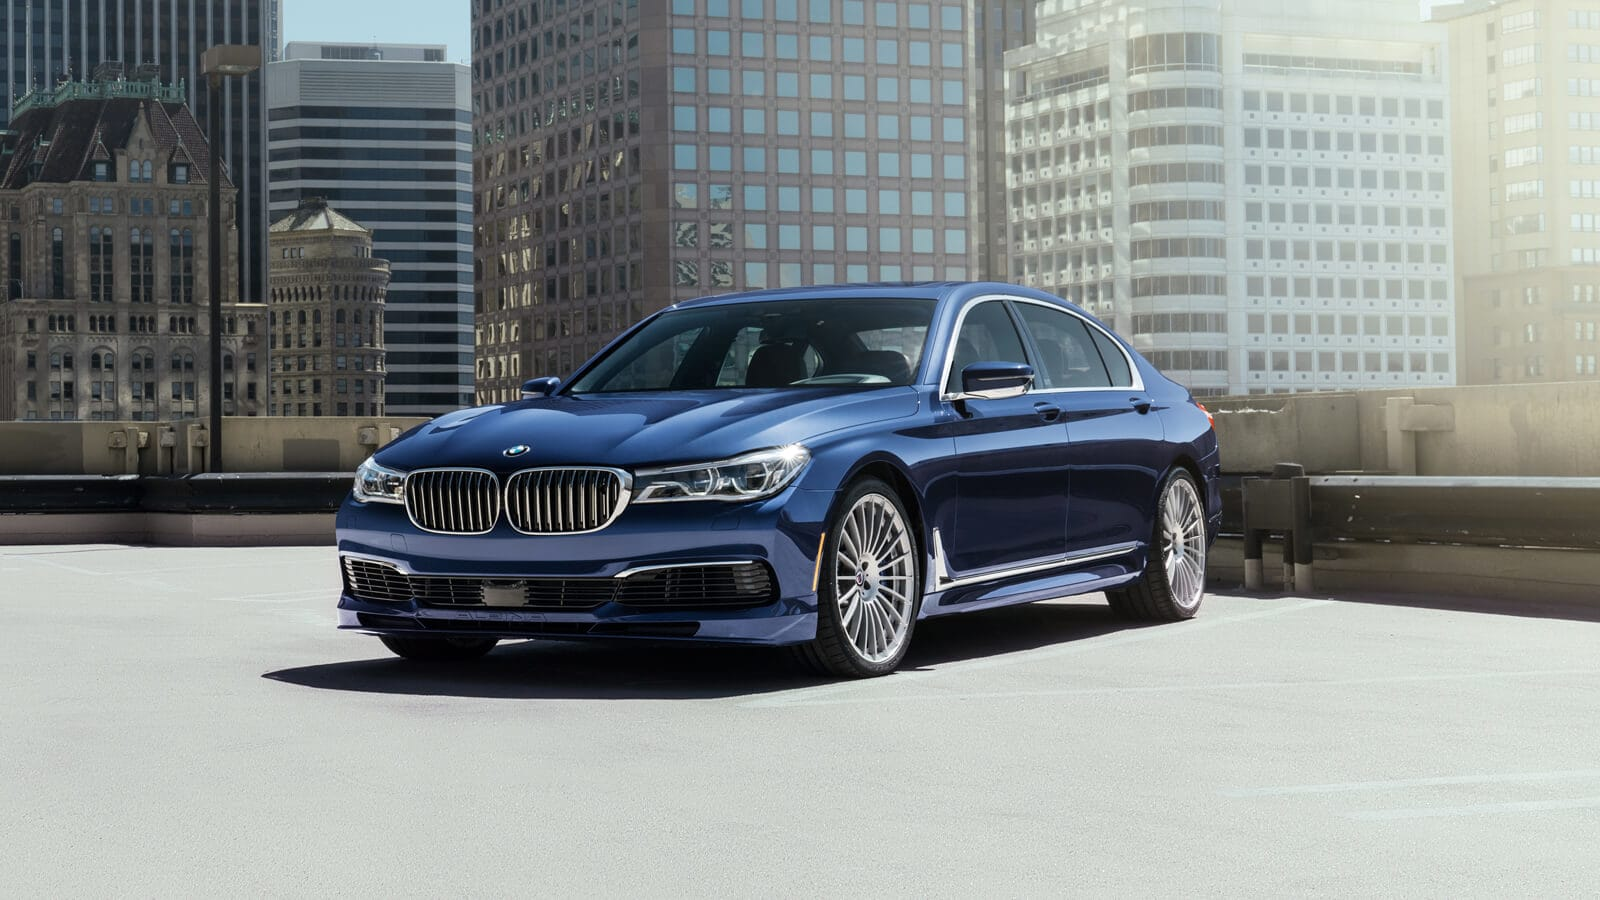 Car Lease Deals Near Me >> 2019 BMW 7 Series for Sale near Gary, IN - BMW of Schererville